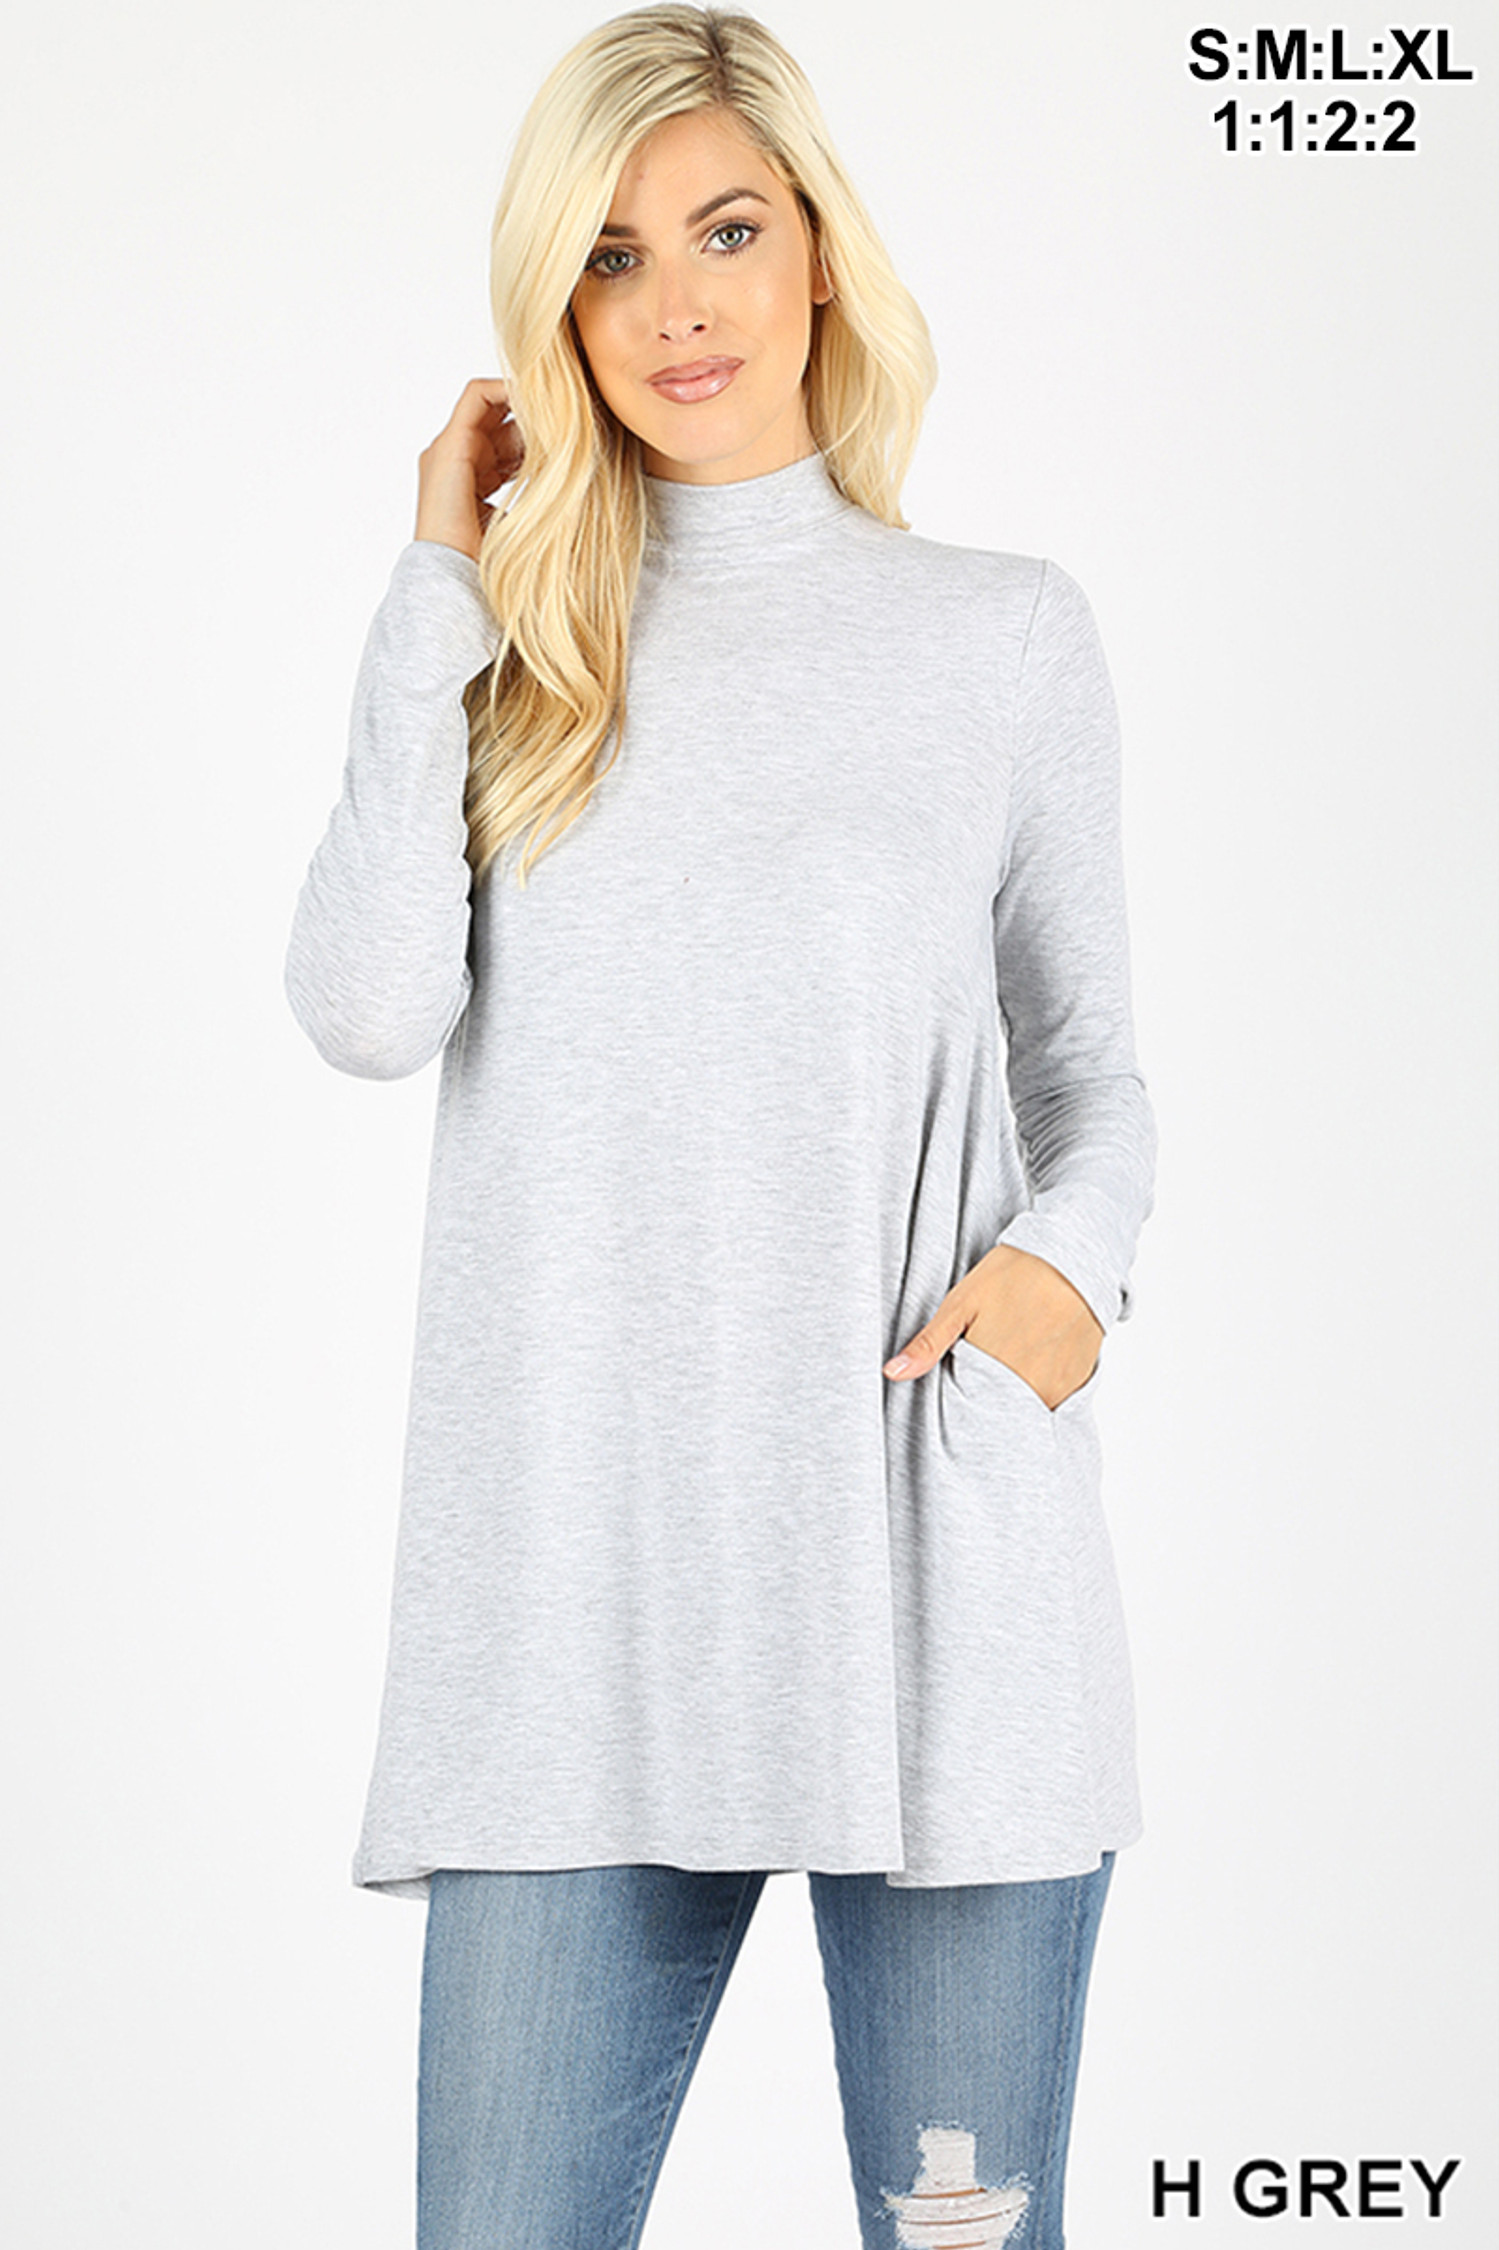 Front image of Heather Grey Long Sleeve Mock Neck Top with Pockets